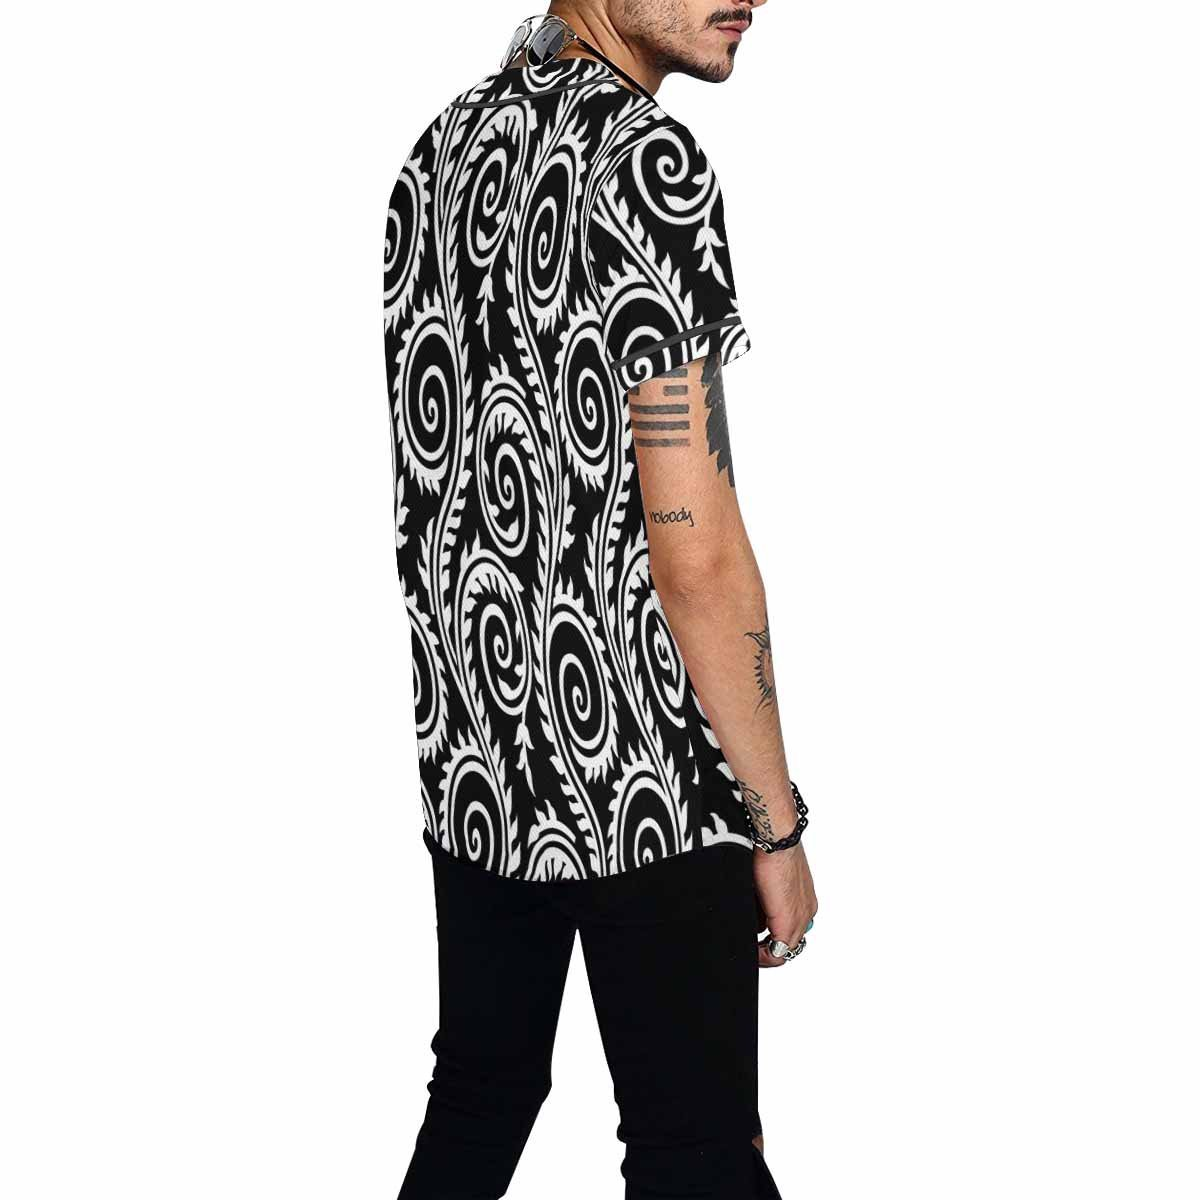 INTERESTPRINT Mens Button Down Baseball Jersey Pattern with Floral Background